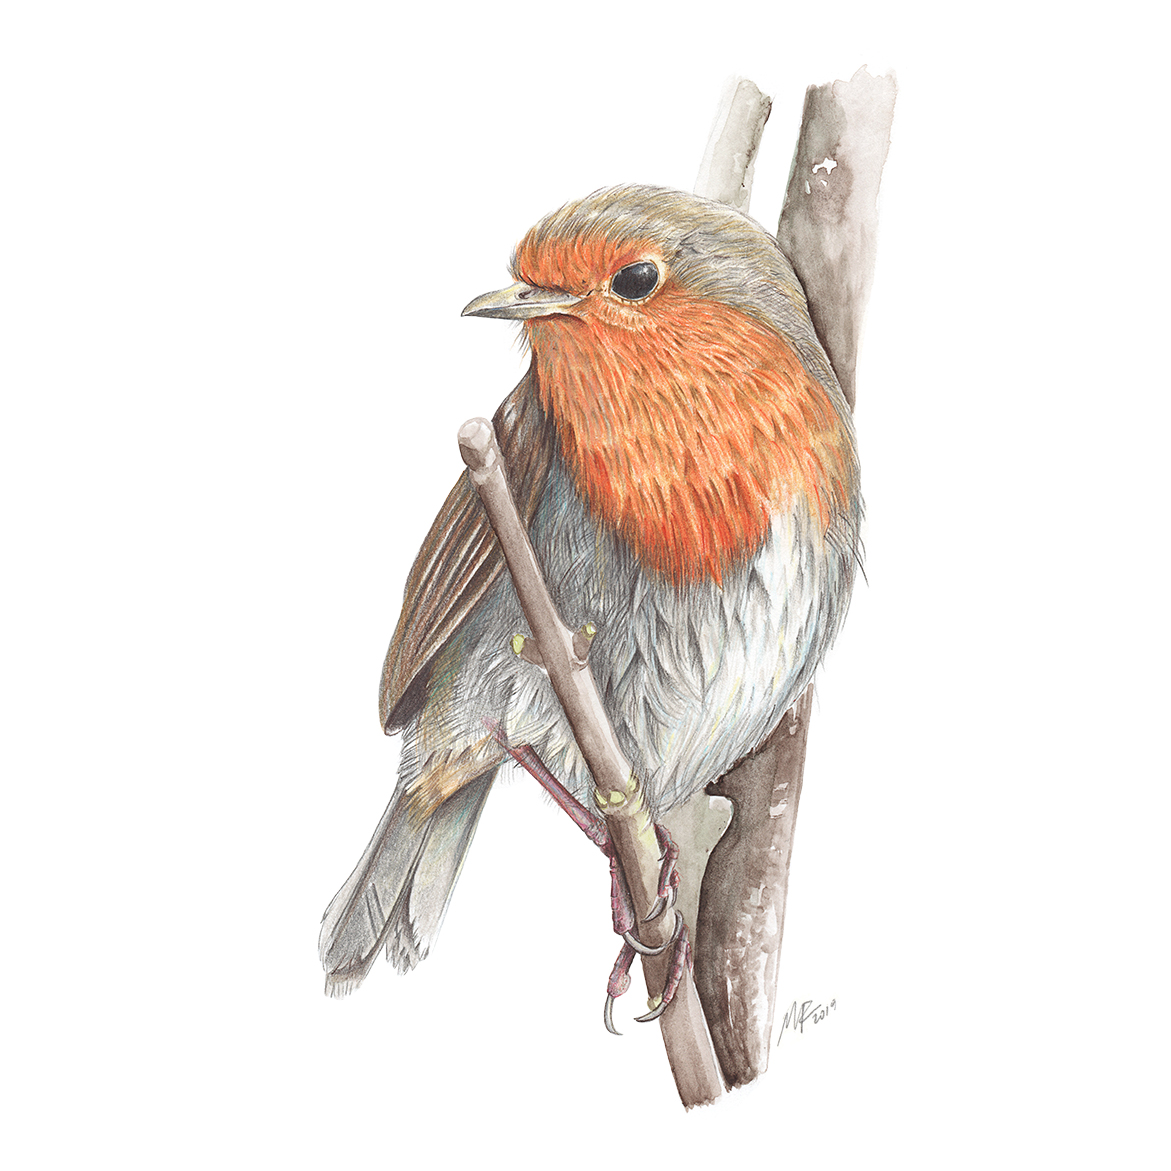 Scottish red robin ( Erithacus rubecula ).